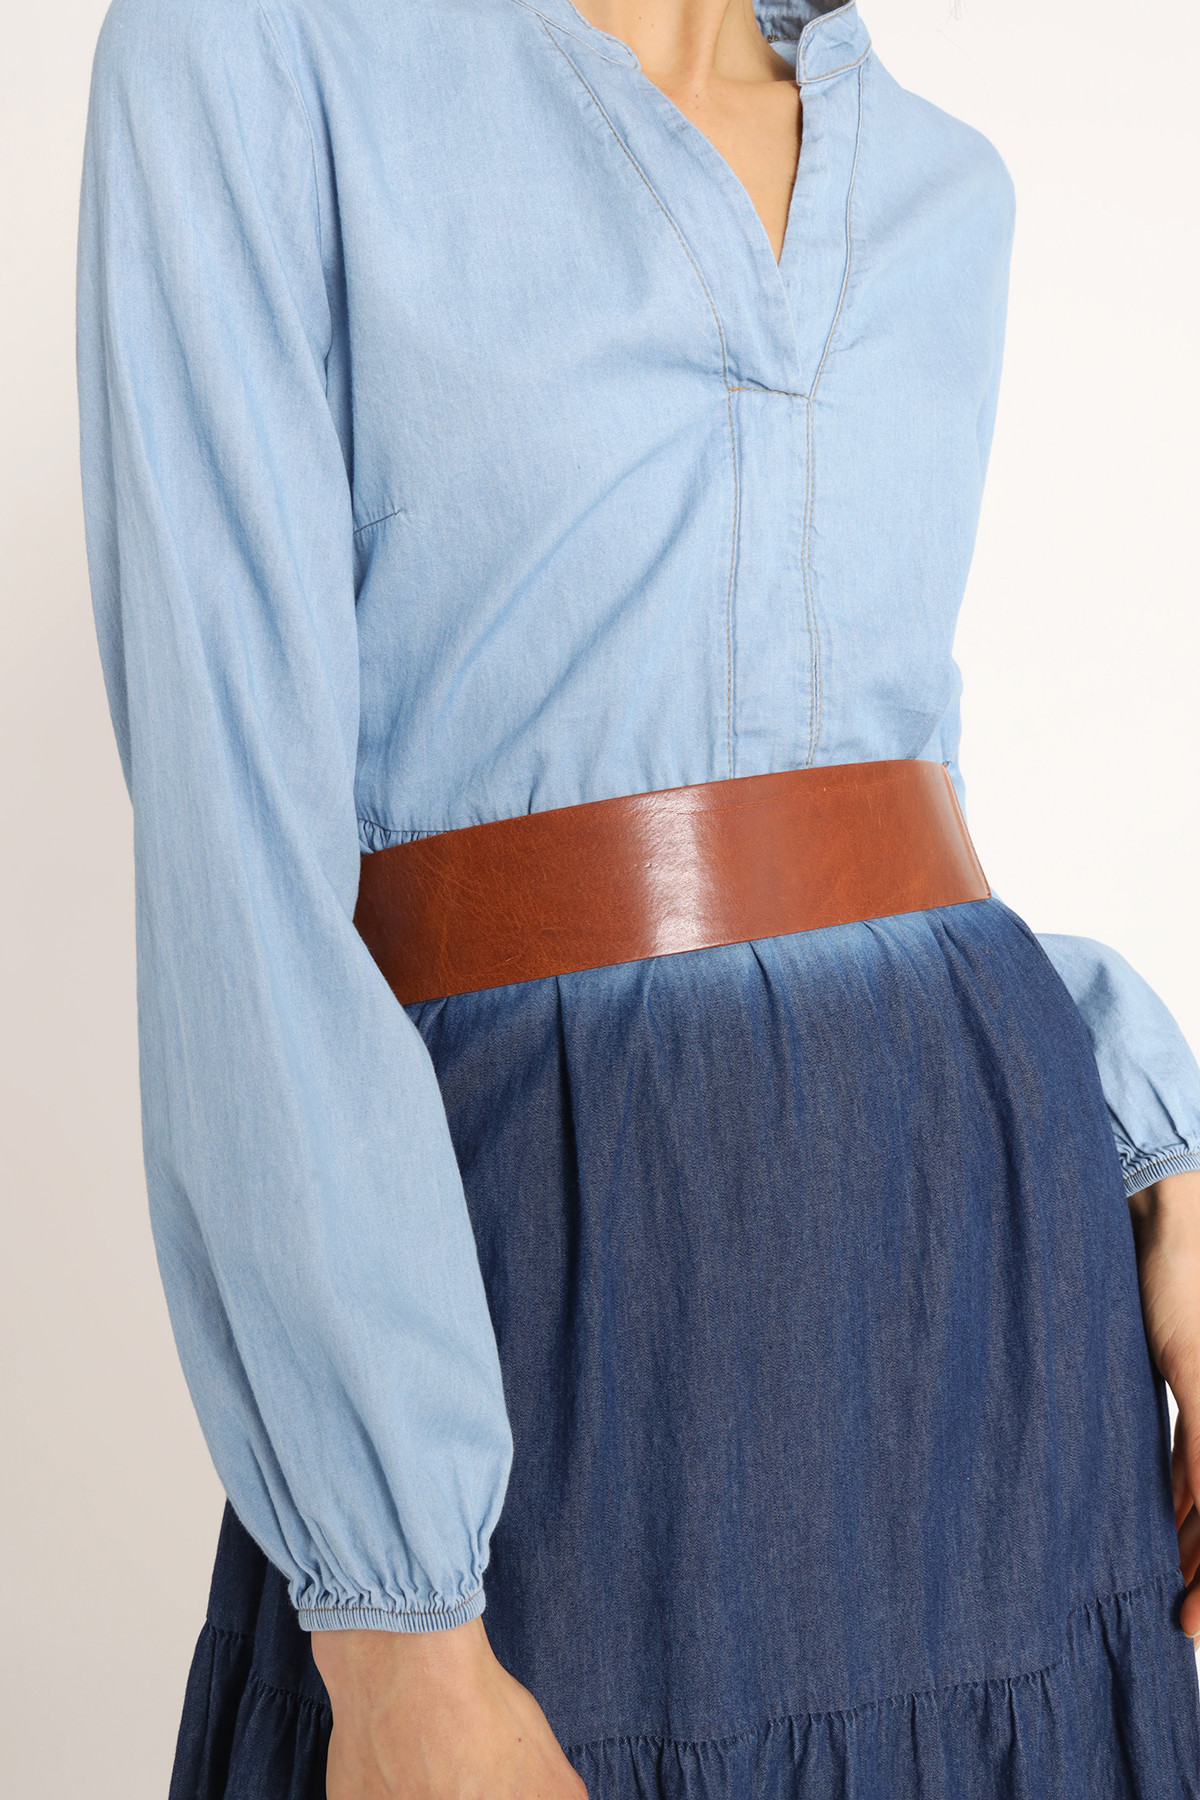 Belt Without Buckle Button Closure